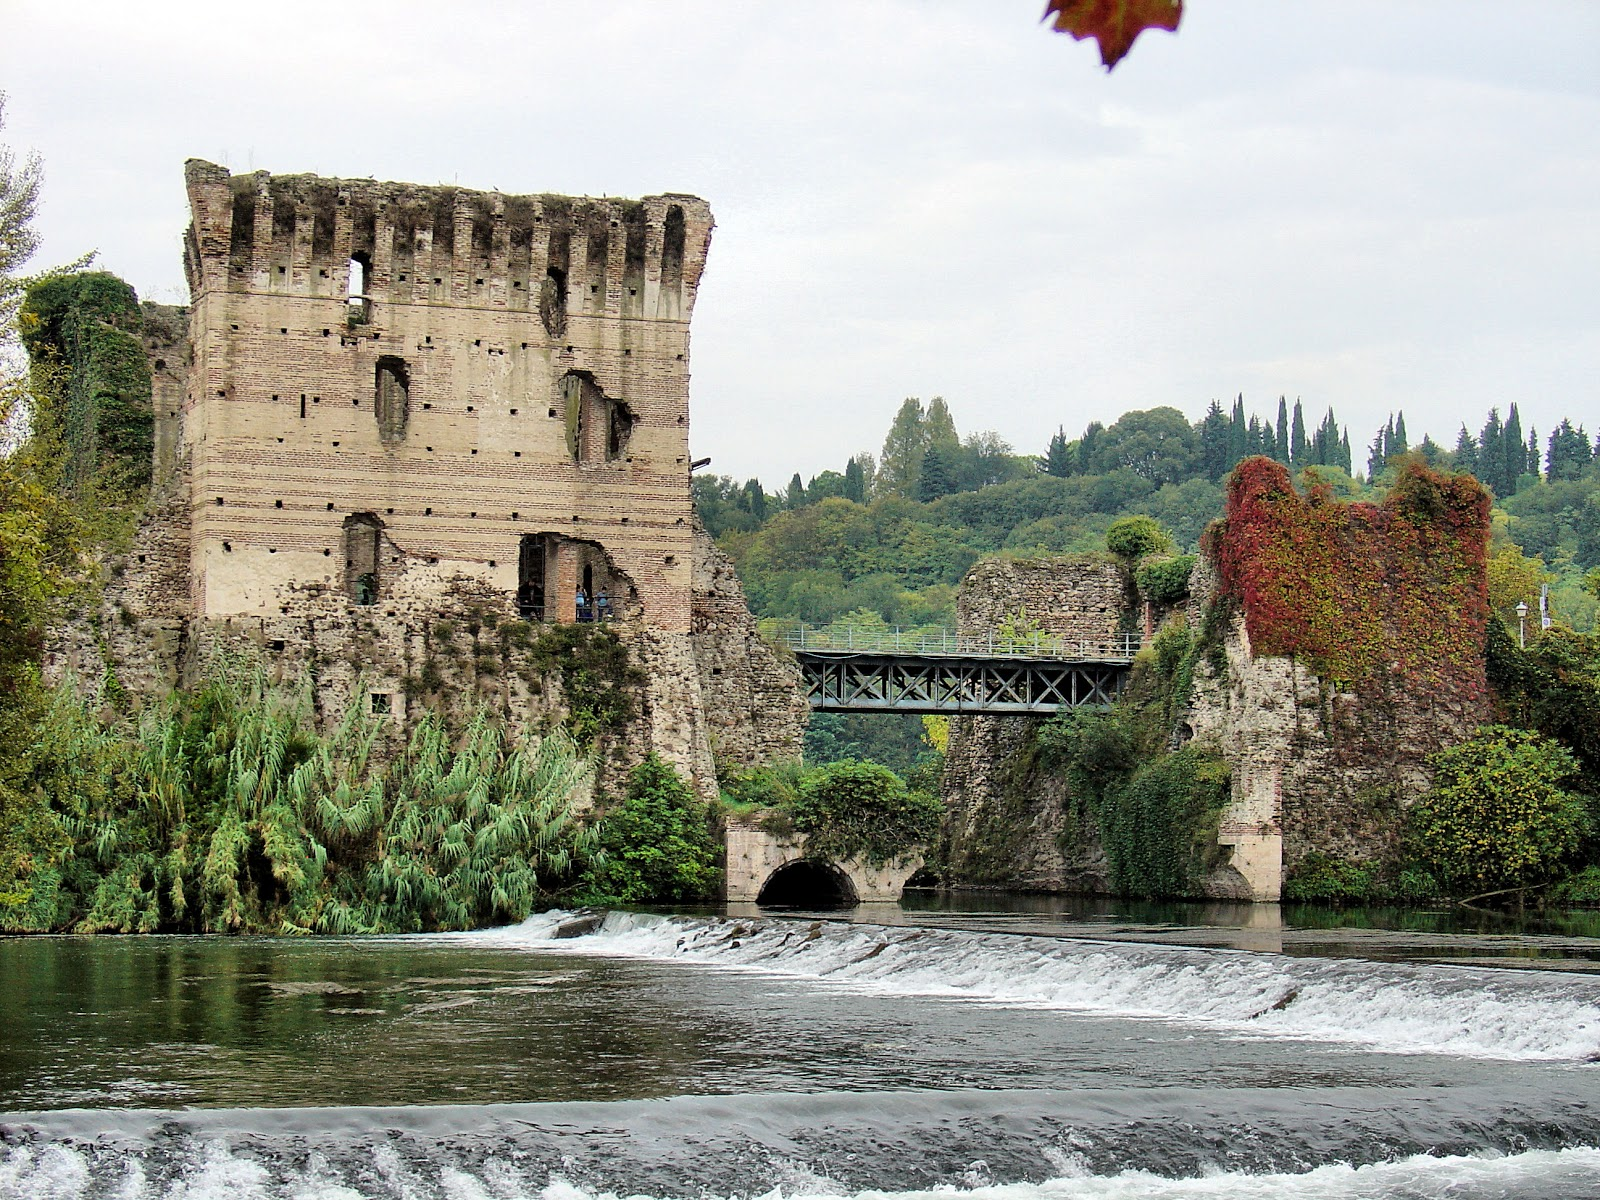 Visconti Bridge and Dam in Borghetto, Italy